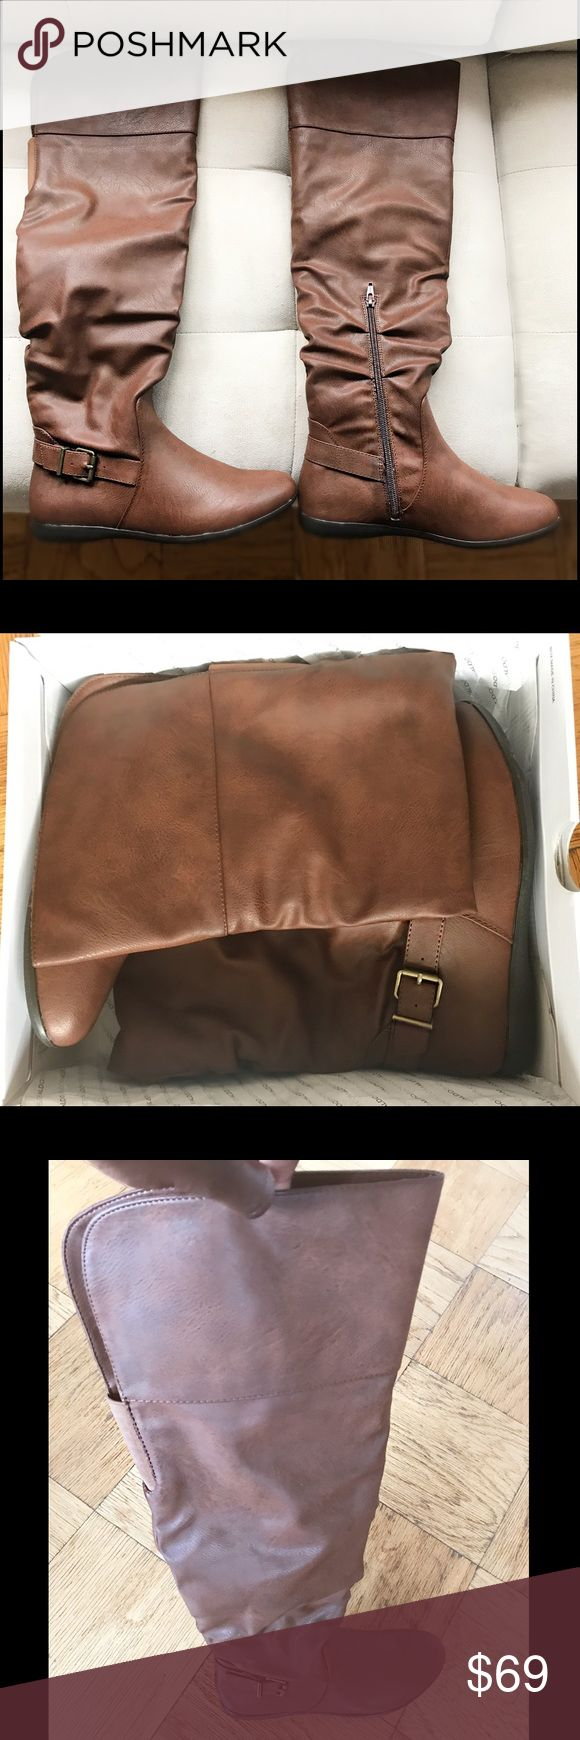 Chocolate Brown Over the Knee Flat Boots BRAND NEW in box.  Never been worn or tried on. 🔥 Aldo Shoes Over the Knee Boots